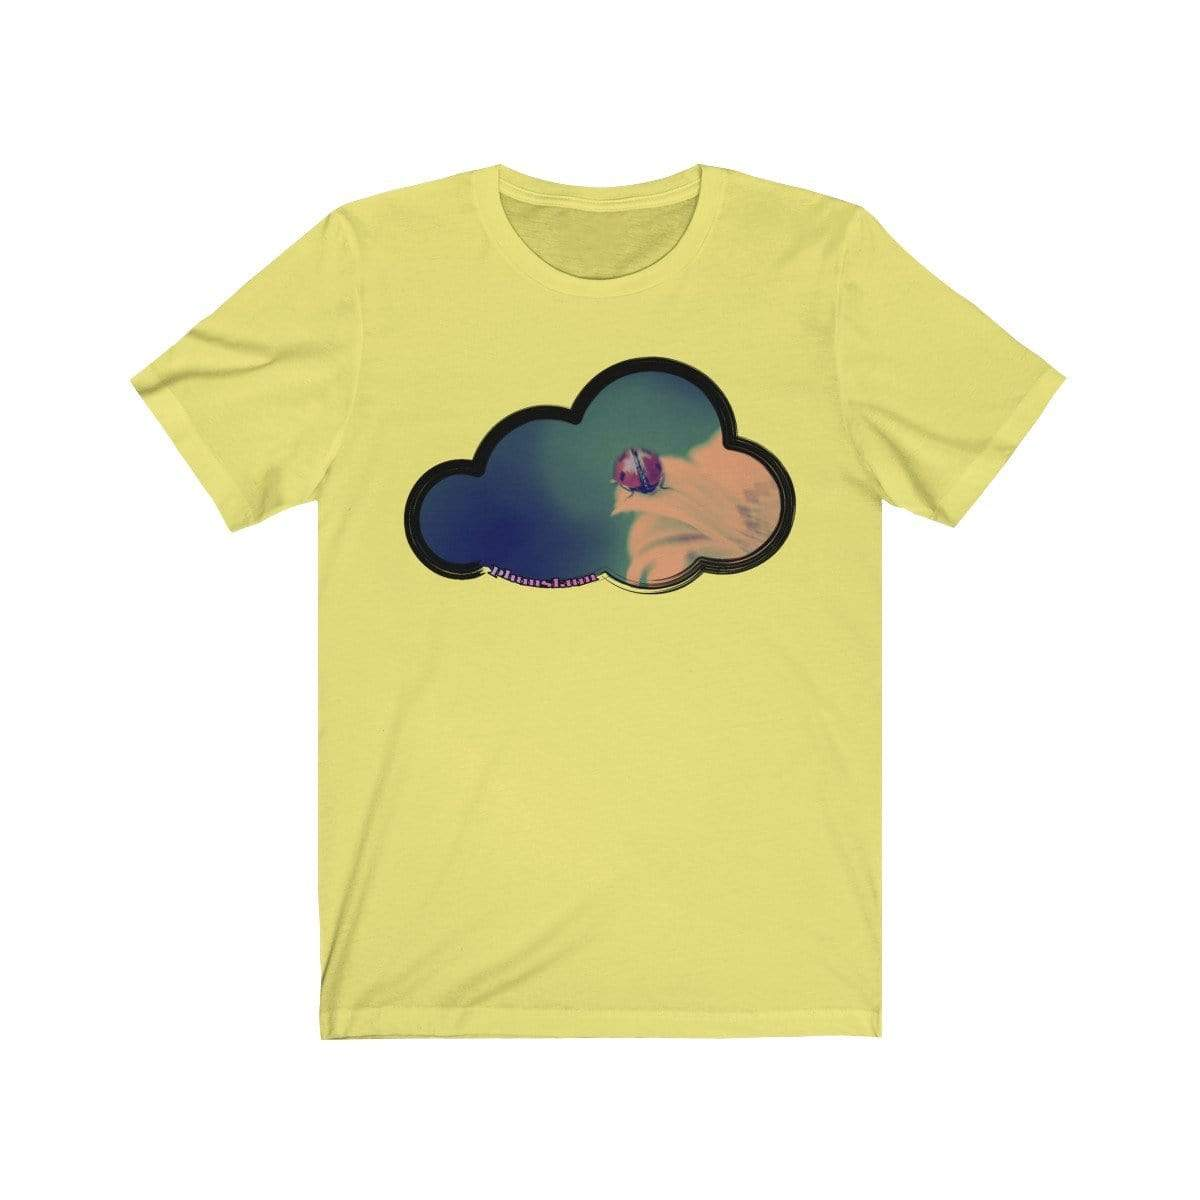 Printify T-Shirt Yellow / M Ladybug Art Clouds Tee